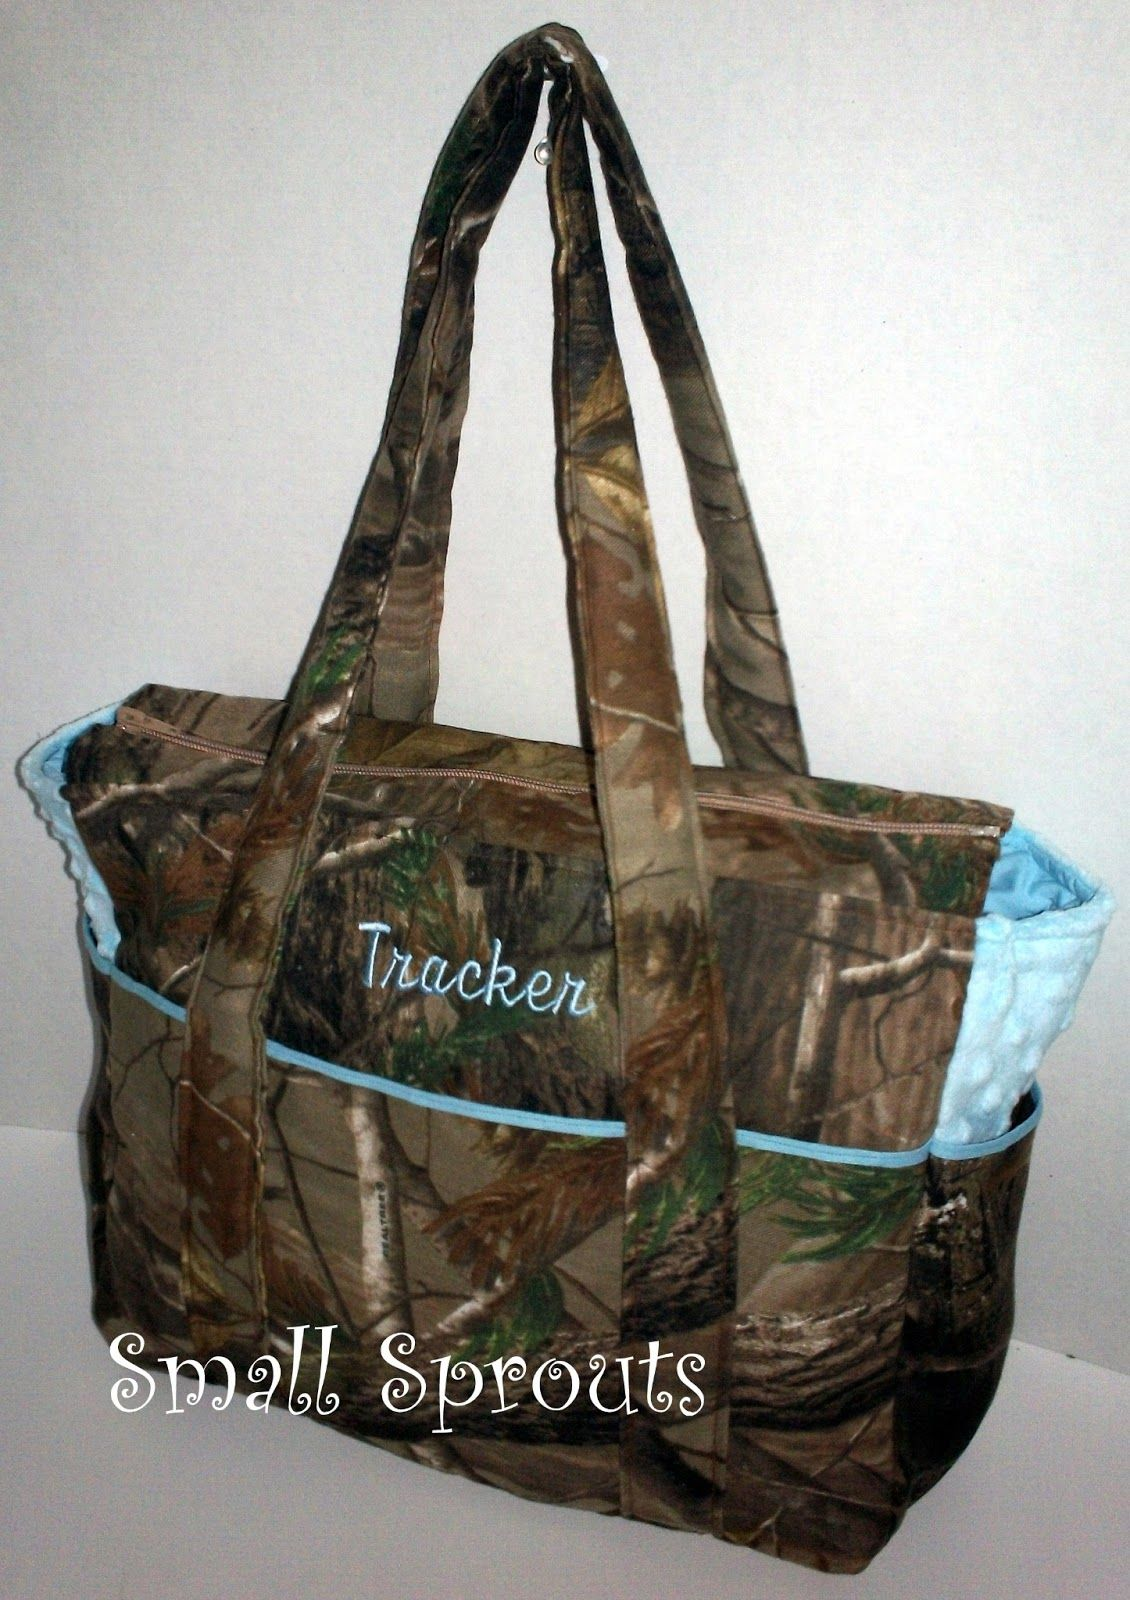 Diaper Bags | Small Sprouts: Real Tree AP Camo Light Blue Fancy ... : quilted camo diaper bag - Adamdwight.com